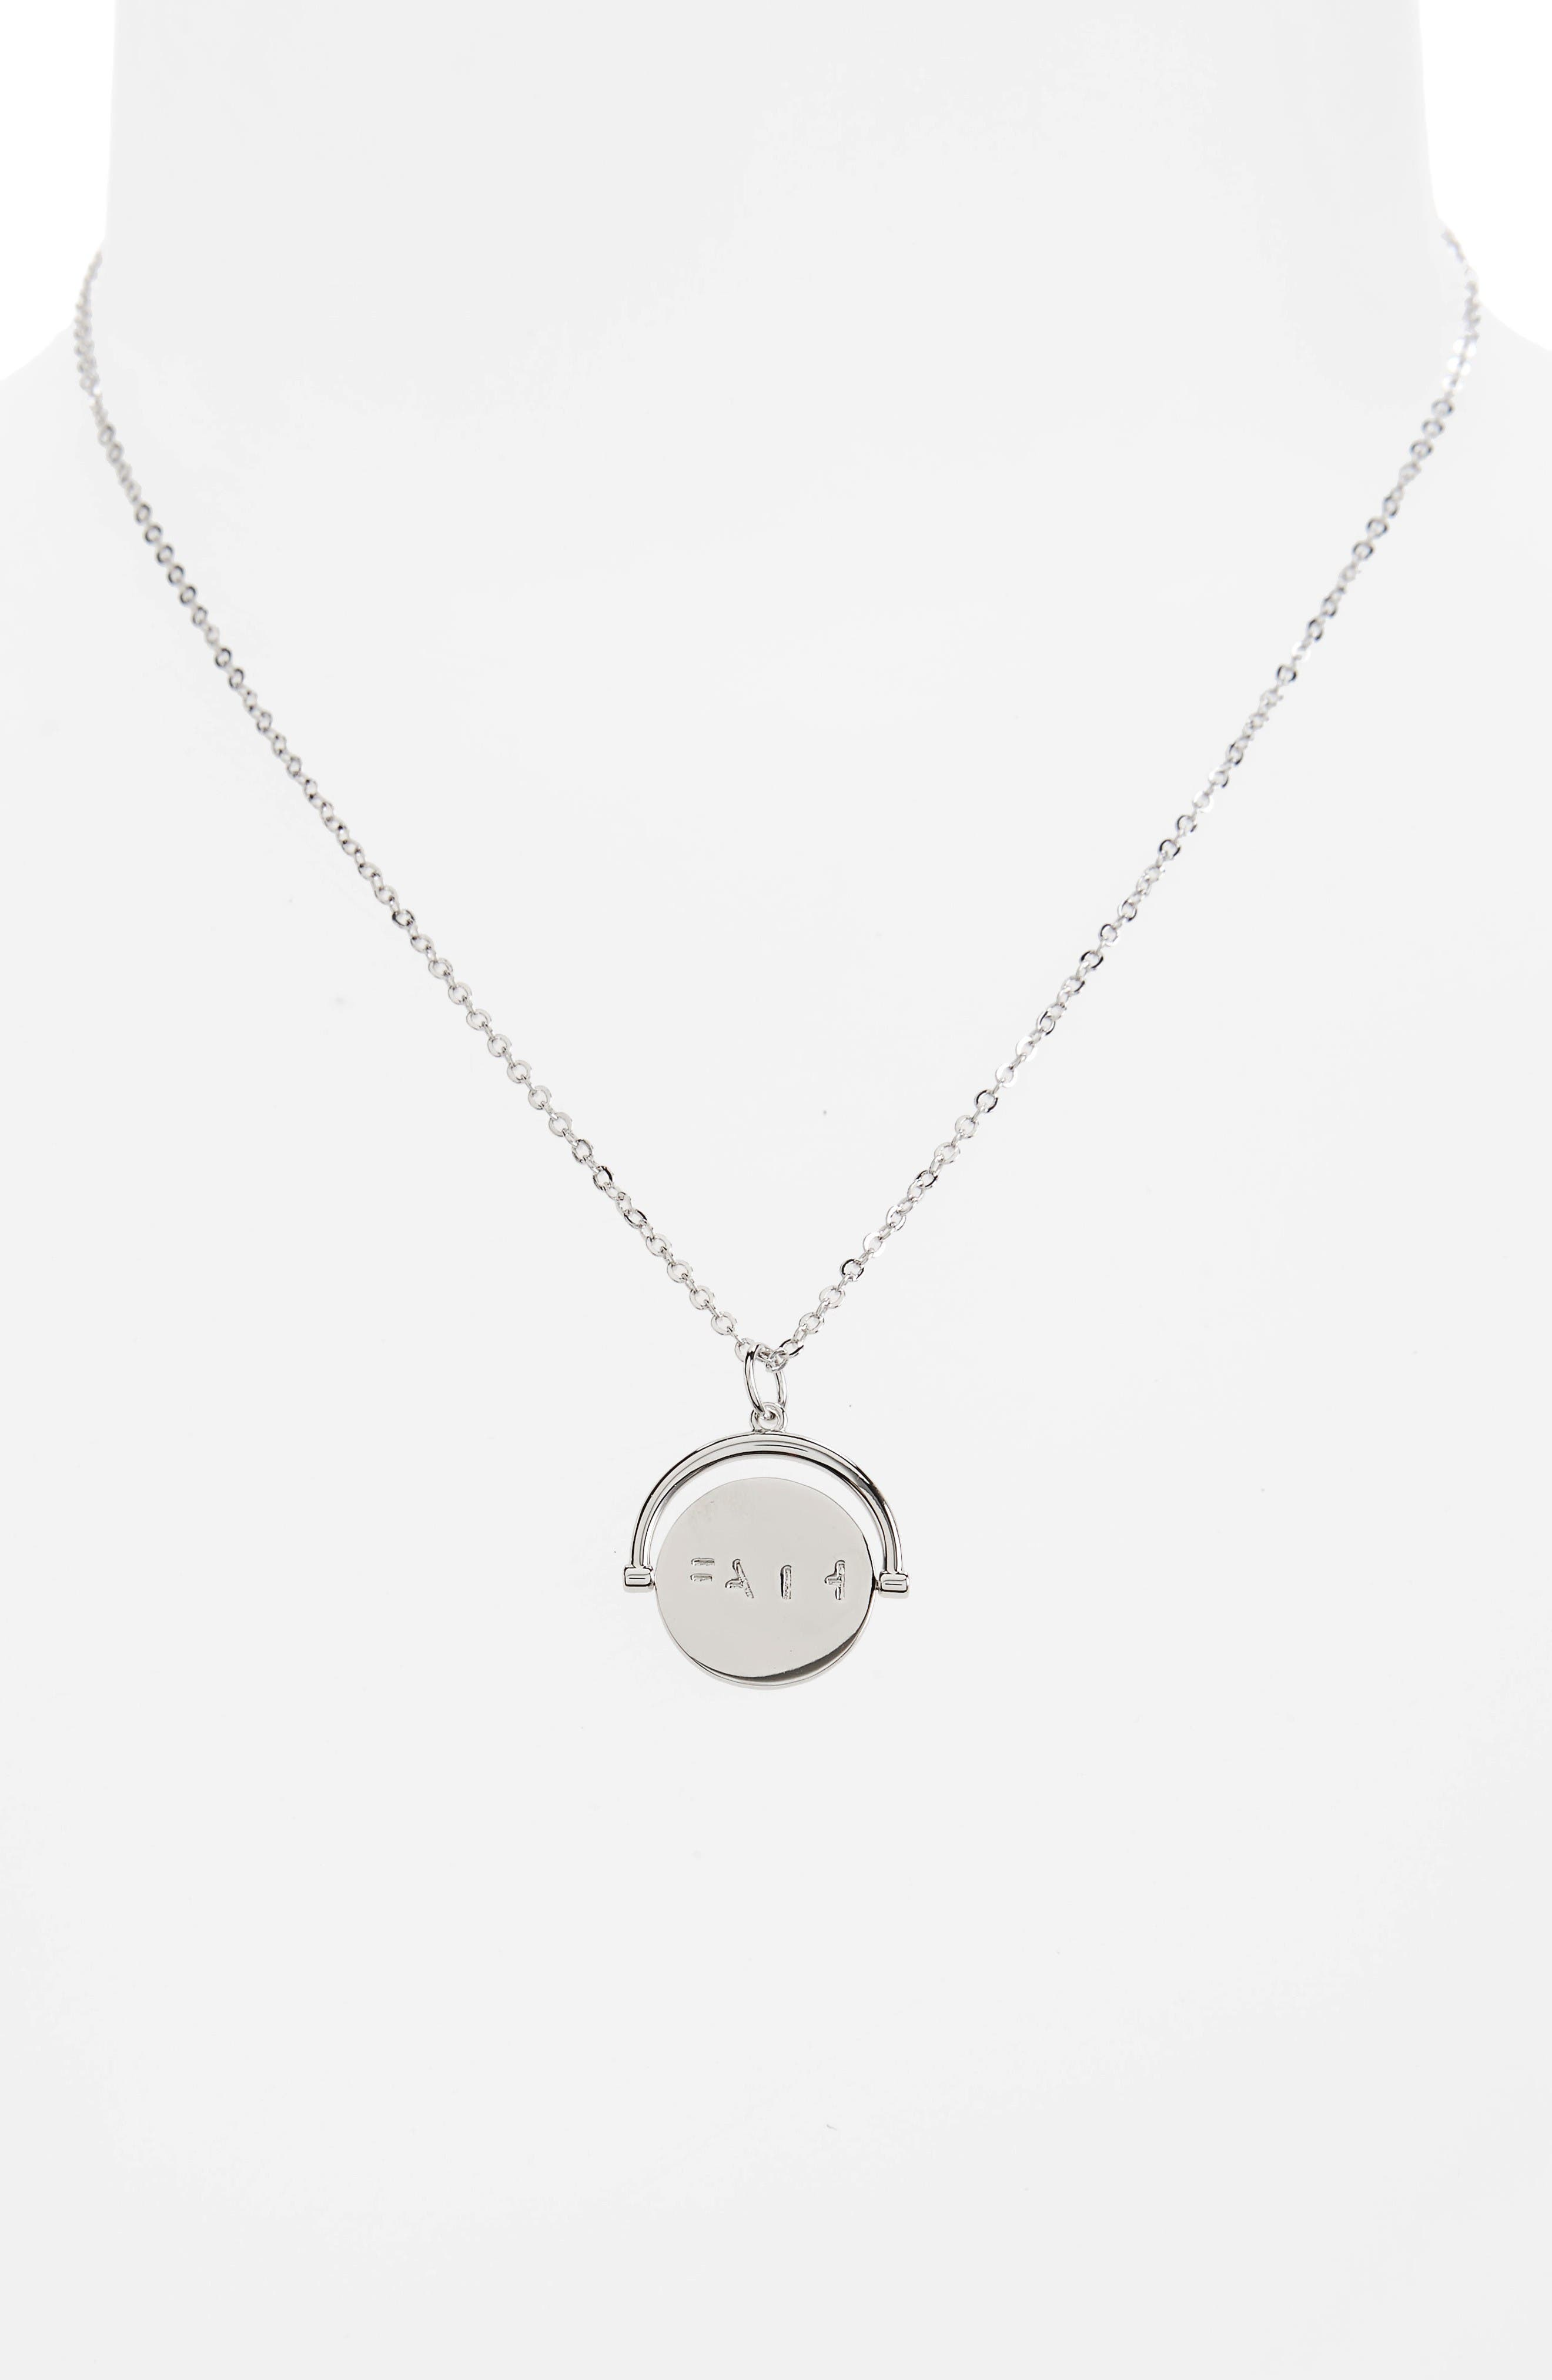 Faith Love Code Charm Necklace,                             Alternate thumbnail 3, color,                             Faith/ Silver